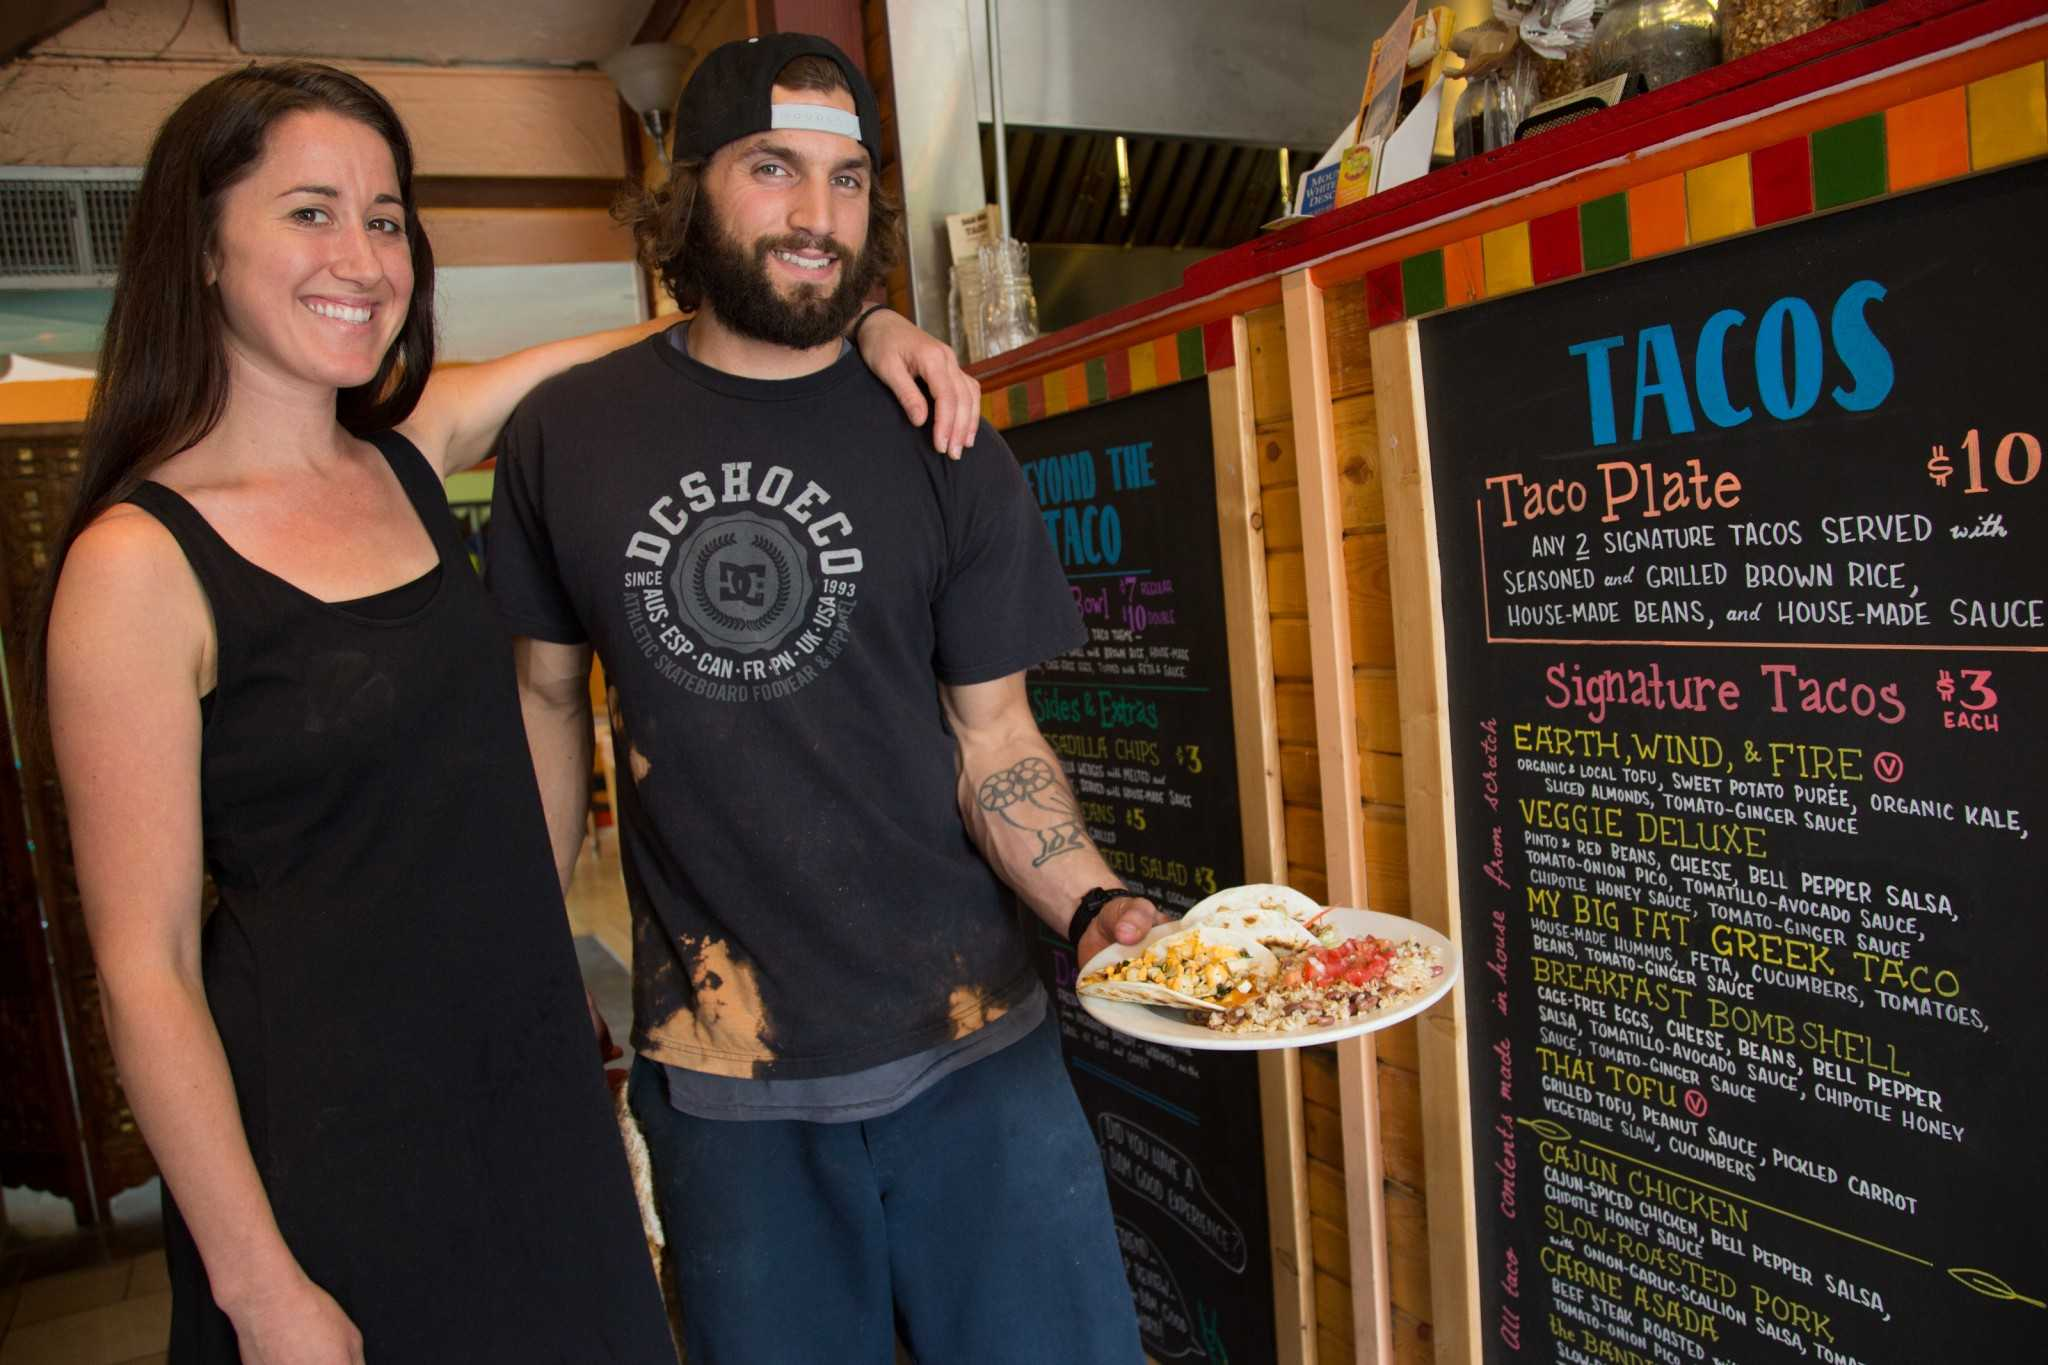 Dam Good Tacos co-owners Ali Hatcher and Michael Falco at their shop in the ally on Laurel St. Ali is a Colorado State University Public Health alum who opened the shop with Michael last June.